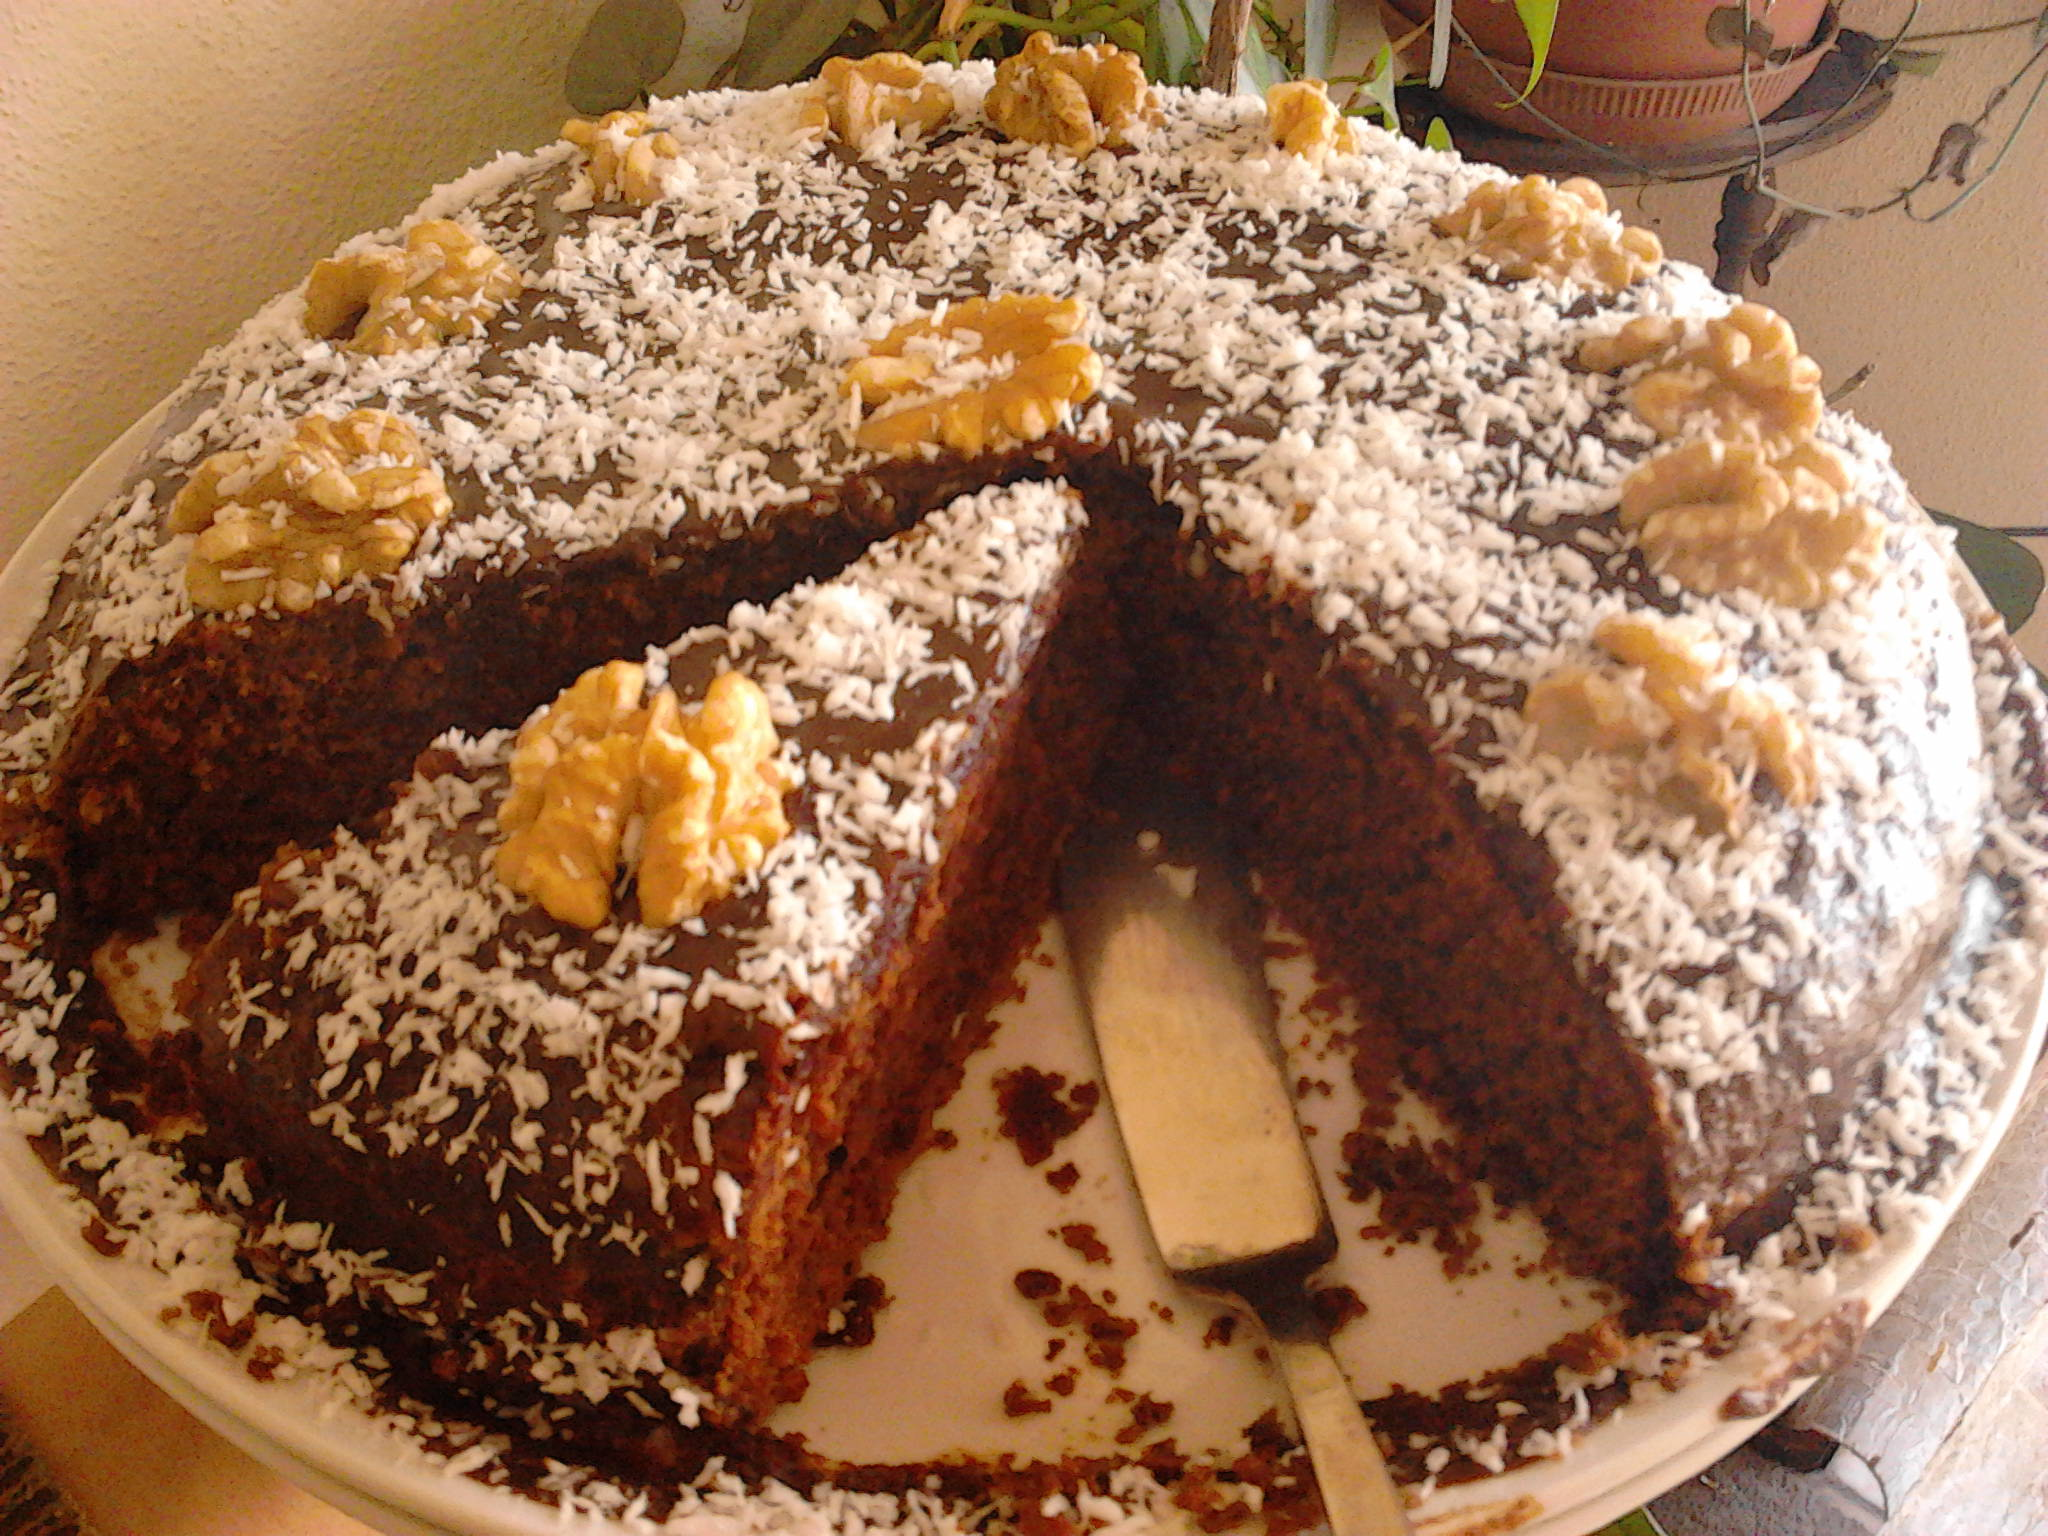 Cocoa Cake with Wheat Germ